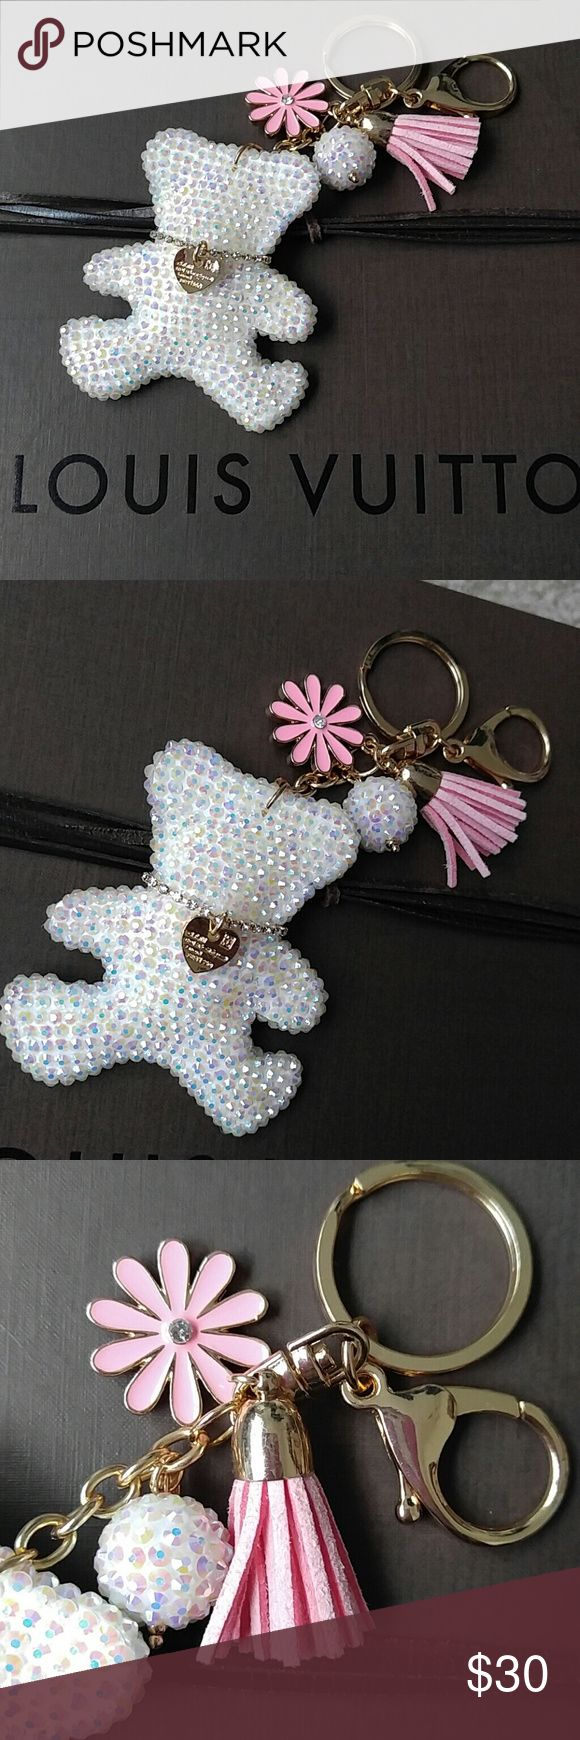 ✨Purse charm✨key ring for your Louis Vuitton purse Sparkly & cute teddy bear purse charm key ring for your Louis vuitton, michael kors, coach, Tory burch, or MCM bag! Embelished with rhinestones that sparkle, and teddy has a gold necklace. Attached is a rhinestone ball, pink tassle, and pink flower with rhinestone in the middle. Very cute! No brand, just a cute charm. Louis Vuitton Accessories Key & Card Holders